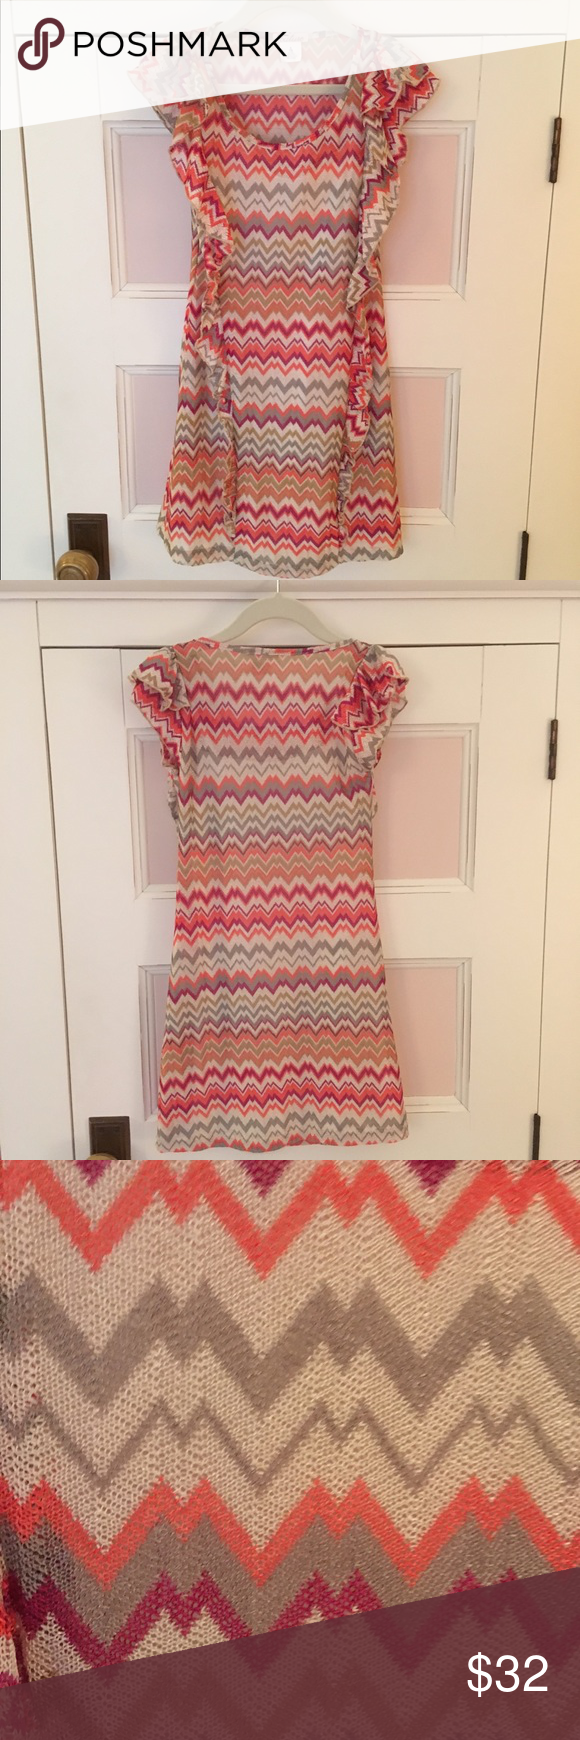 ❁ Sally Miller Couture Zig-Zag, Striped Dress ❁ Gently used summer dress! Two layers, fun and colorful pattern and ruffles along the sides! Sally Miller Dresses Formal #sallymiller